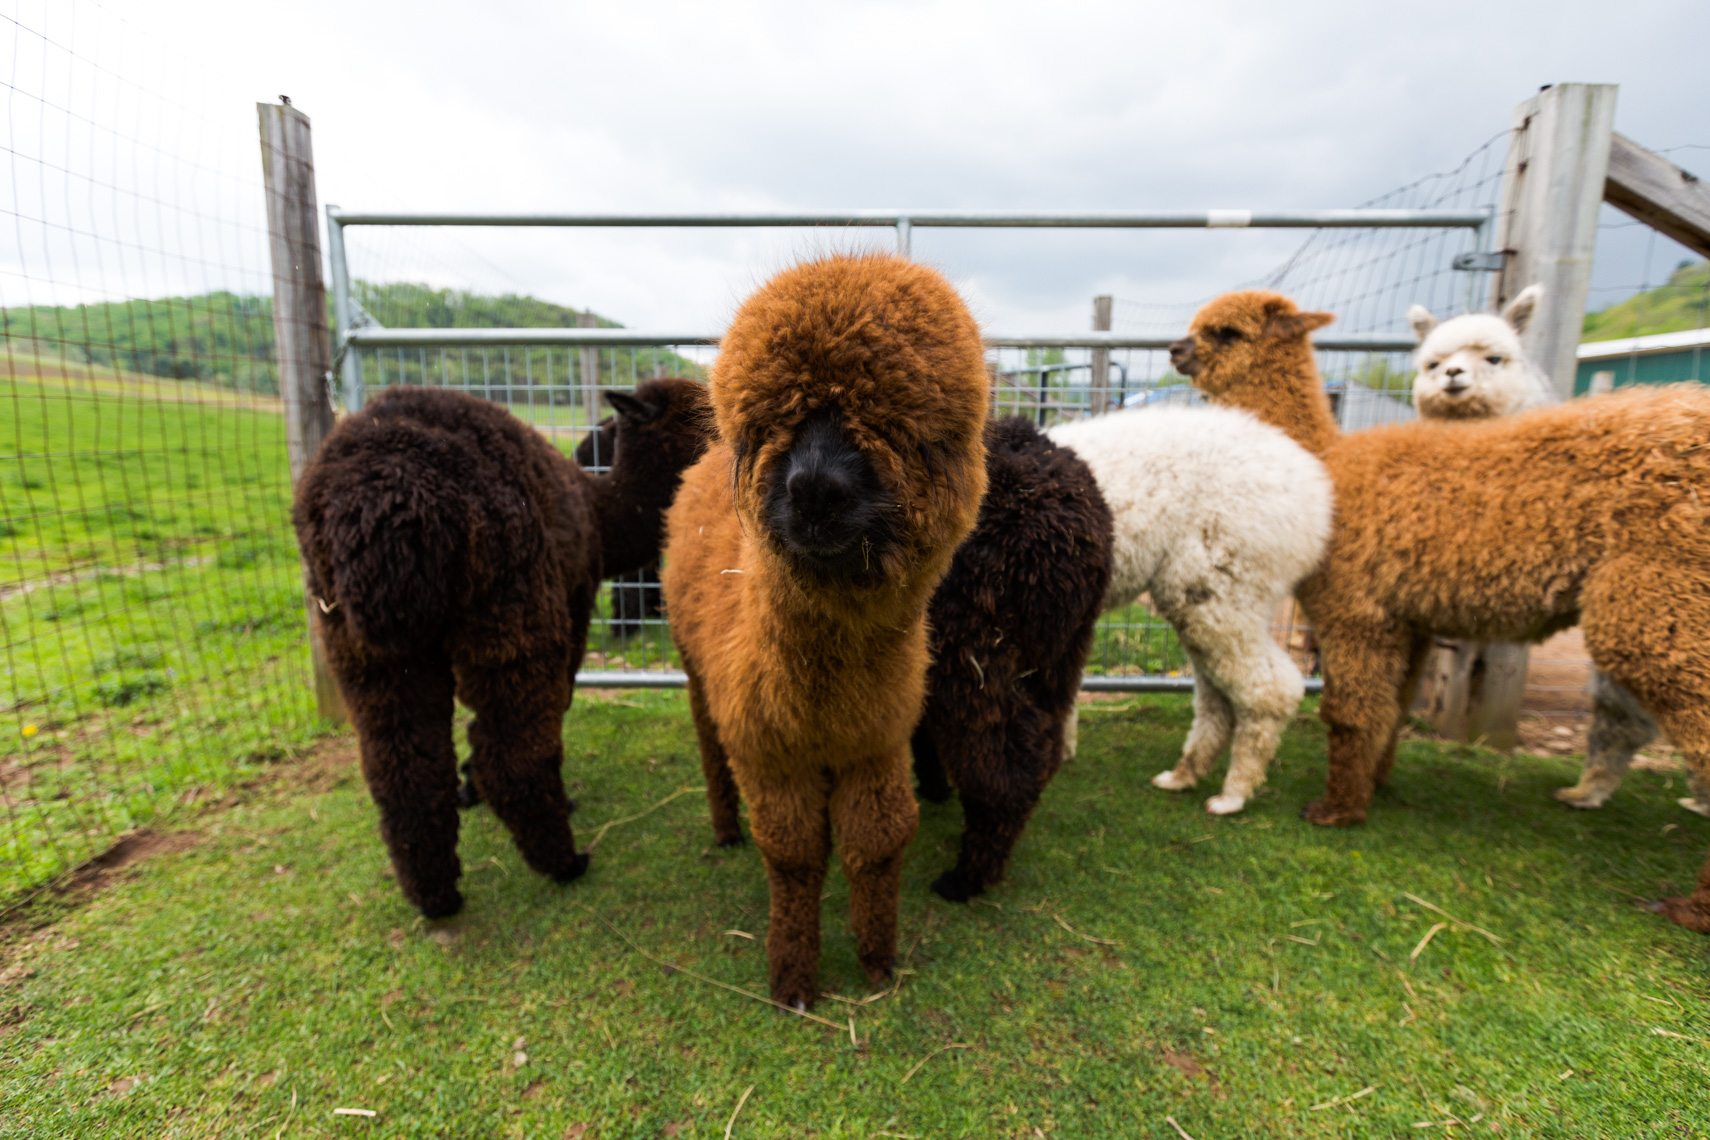 Crias on an alpaca farm